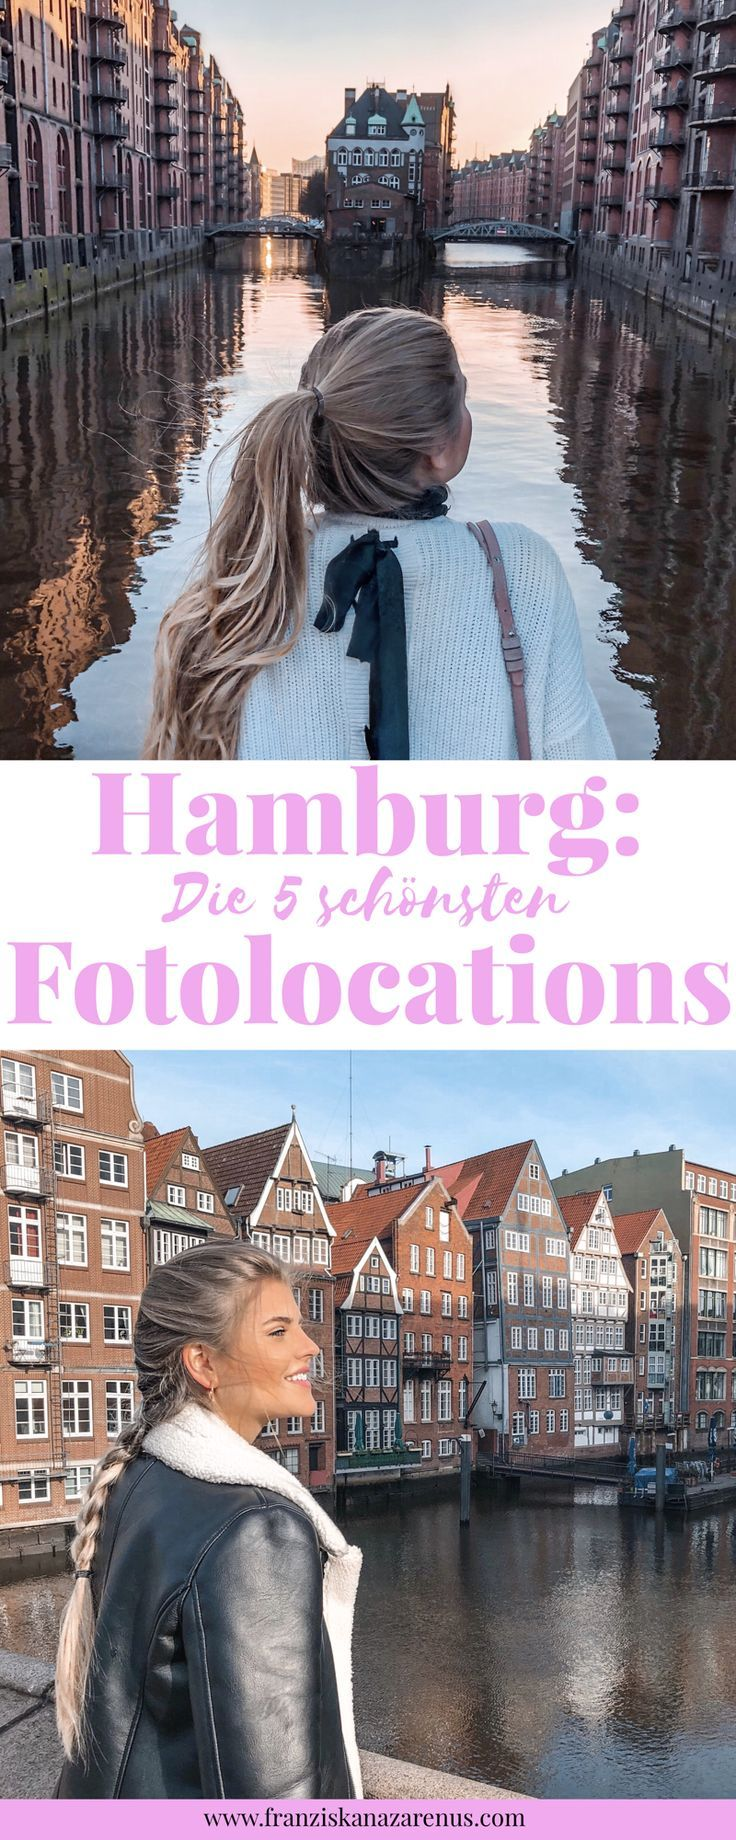 die 5 sch nsten fotolocations in hamburg st dtereisen weltweit tipps pinterest. Black Bedroom Furniture Sets. Home Design Ideas